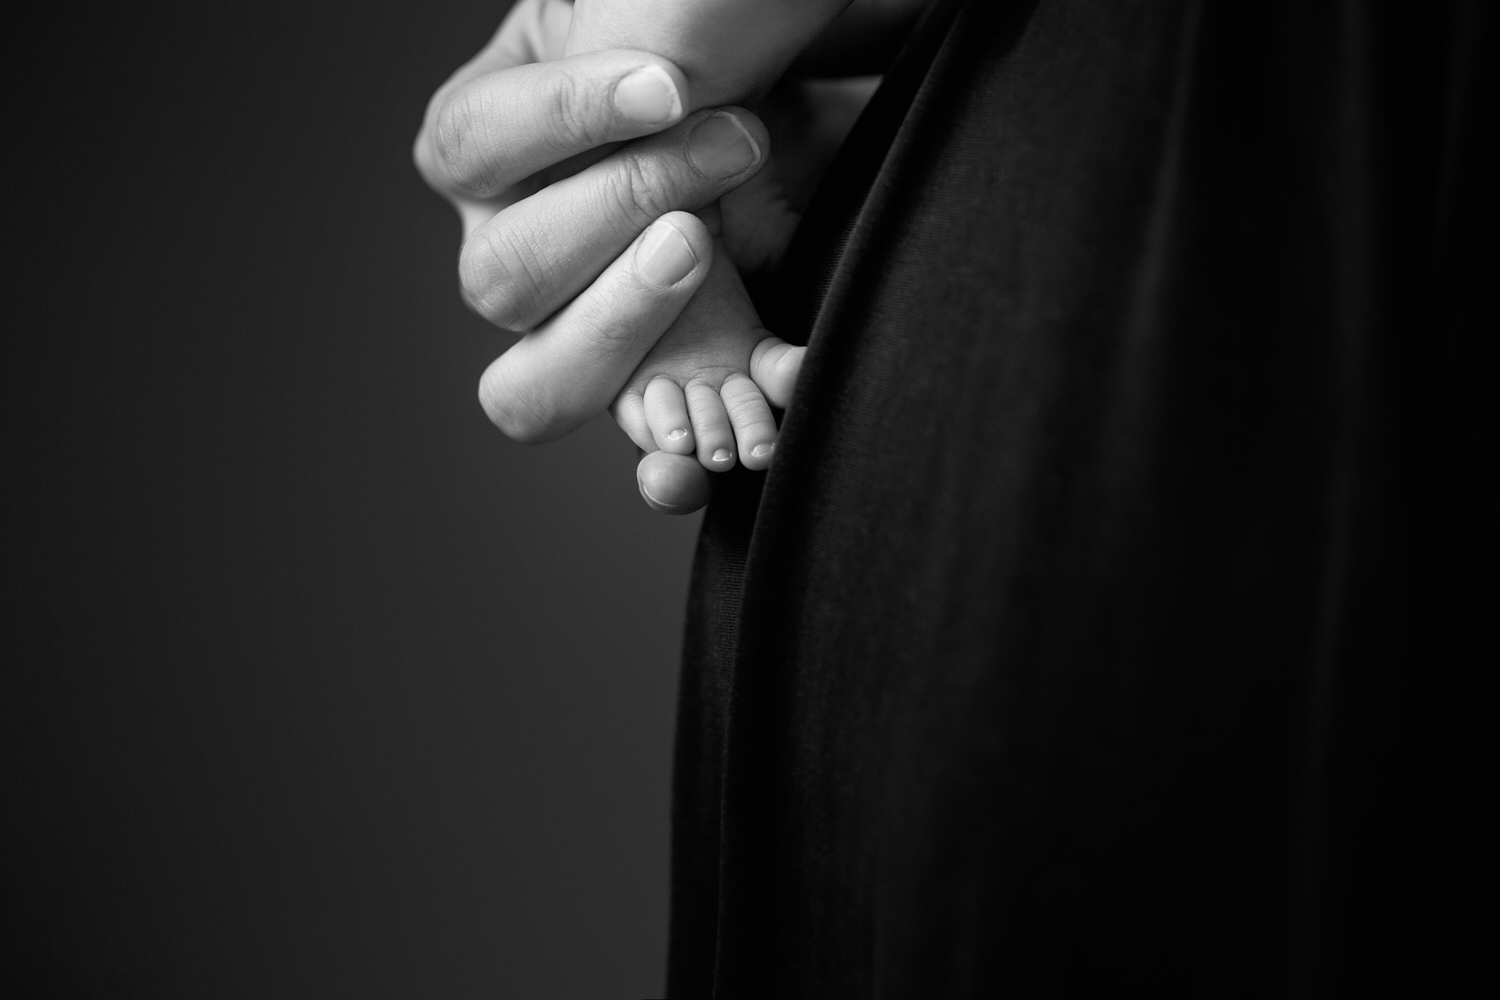 mom is holding her baby's little toes during an indoor studio photography shoot